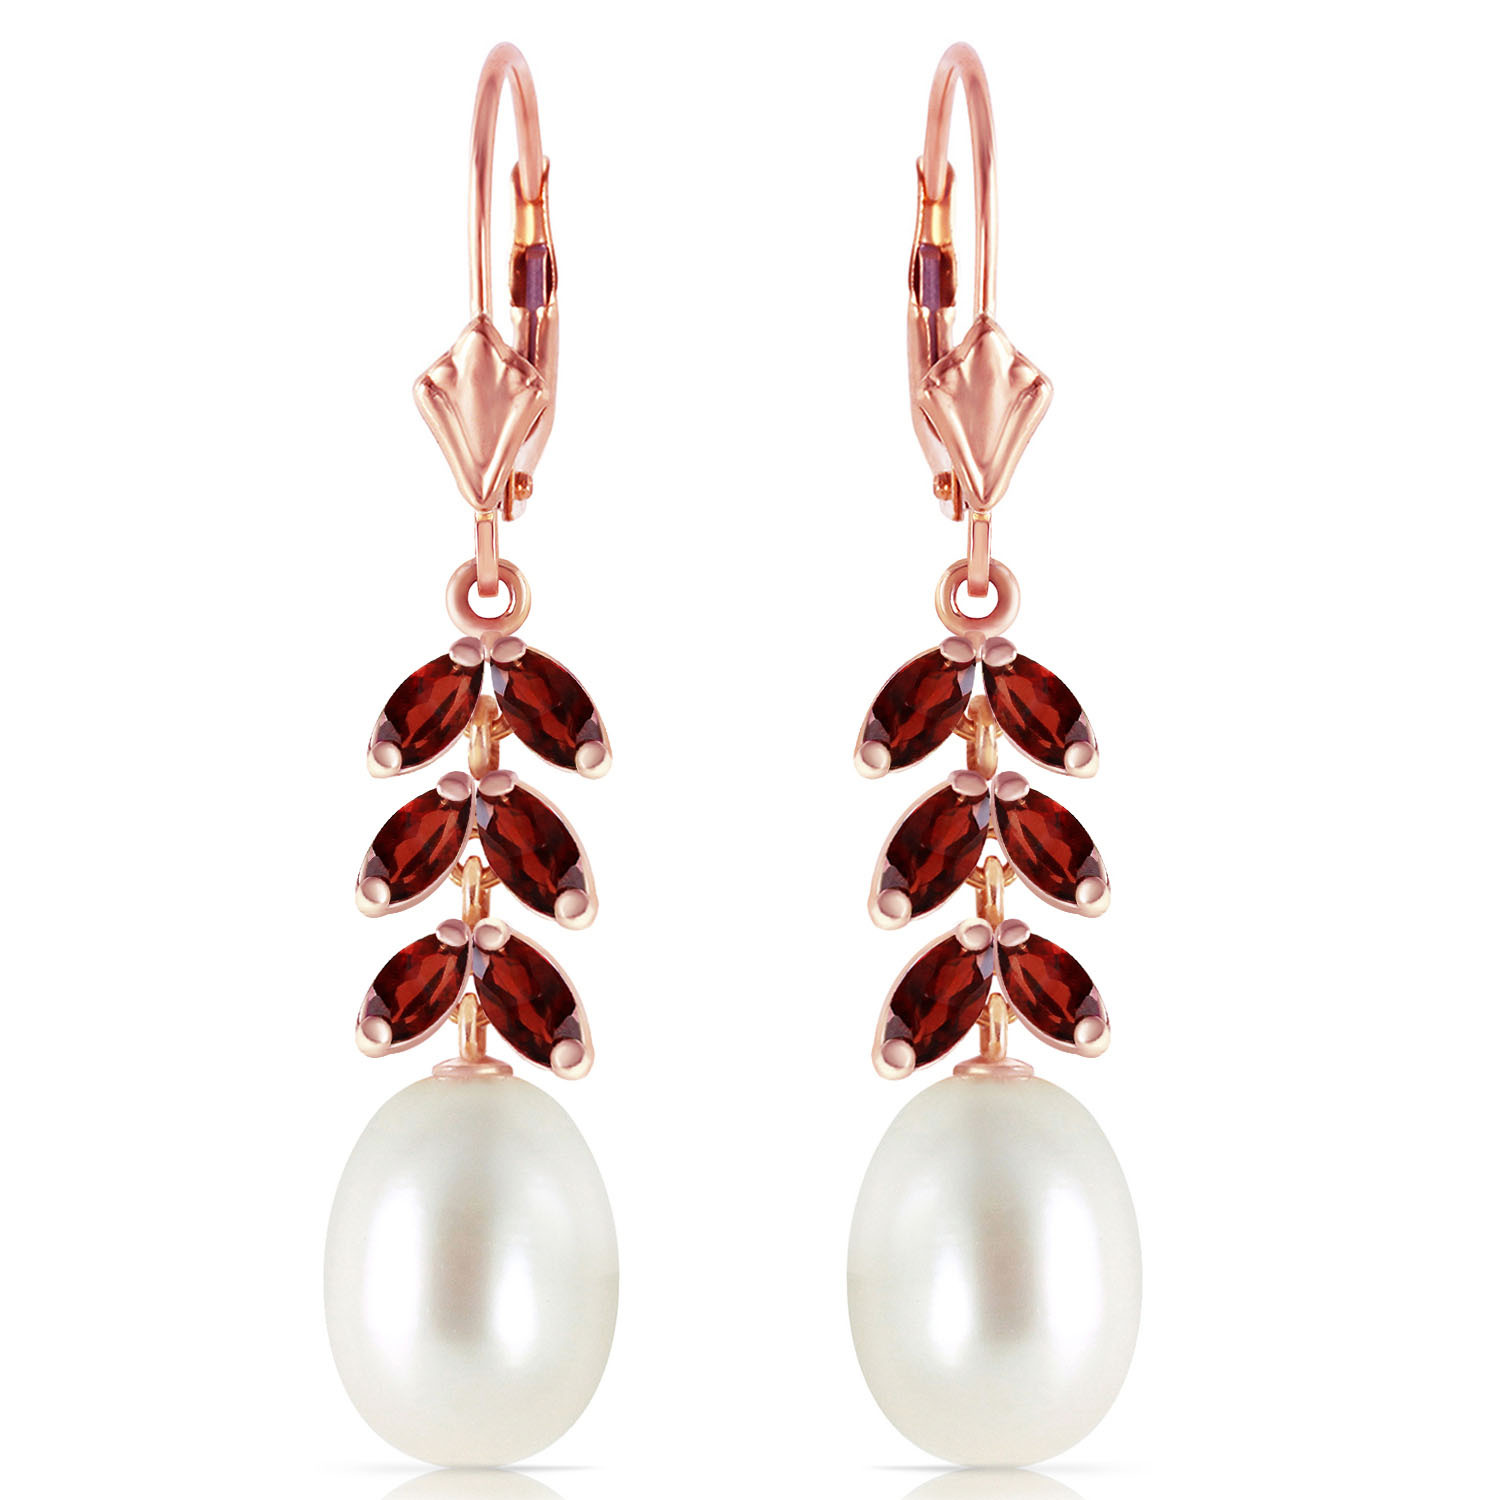 Primary image for 14K Solid Rose Gold Women's Cute Leverback Fashion Earrings w/ Garnets & pearls